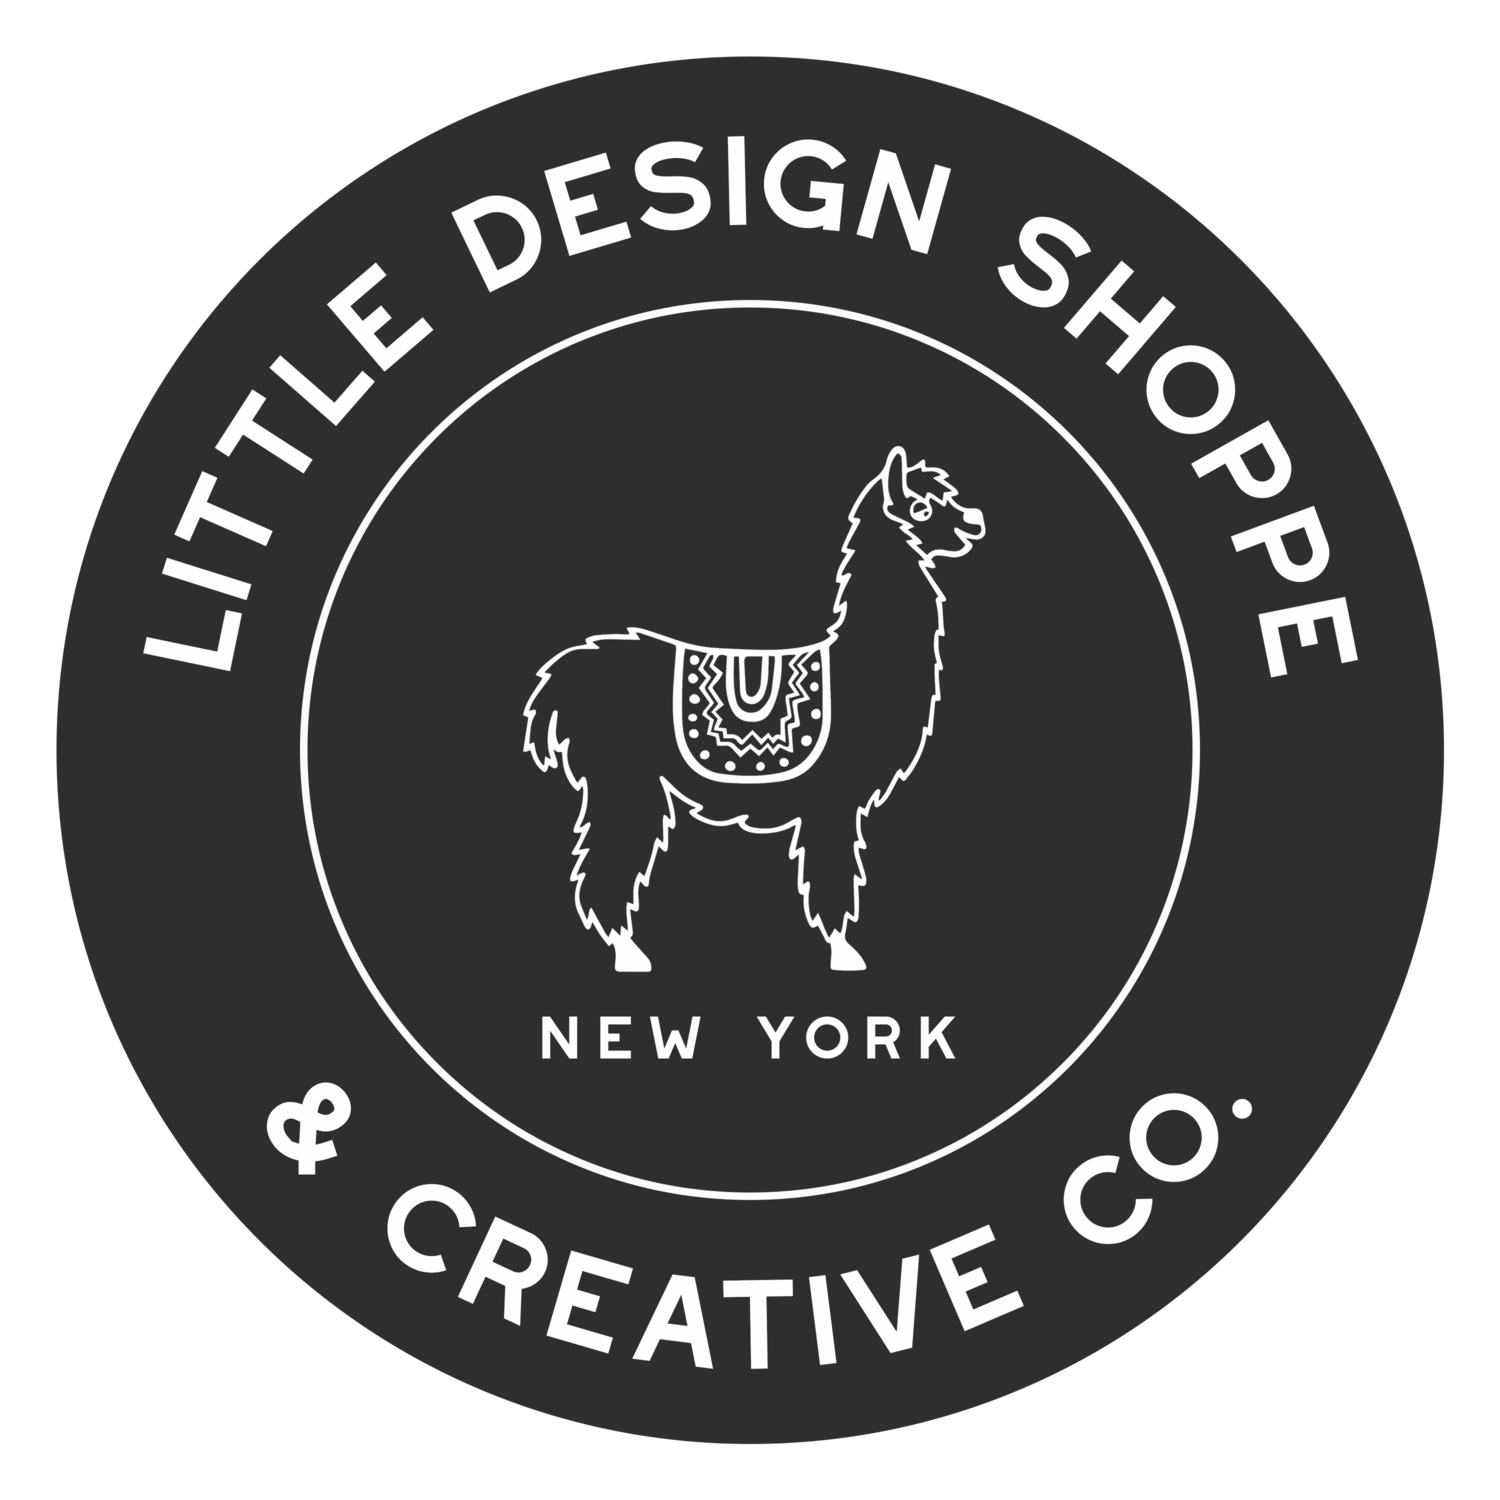 Little Design Shoppe & Creative Co.